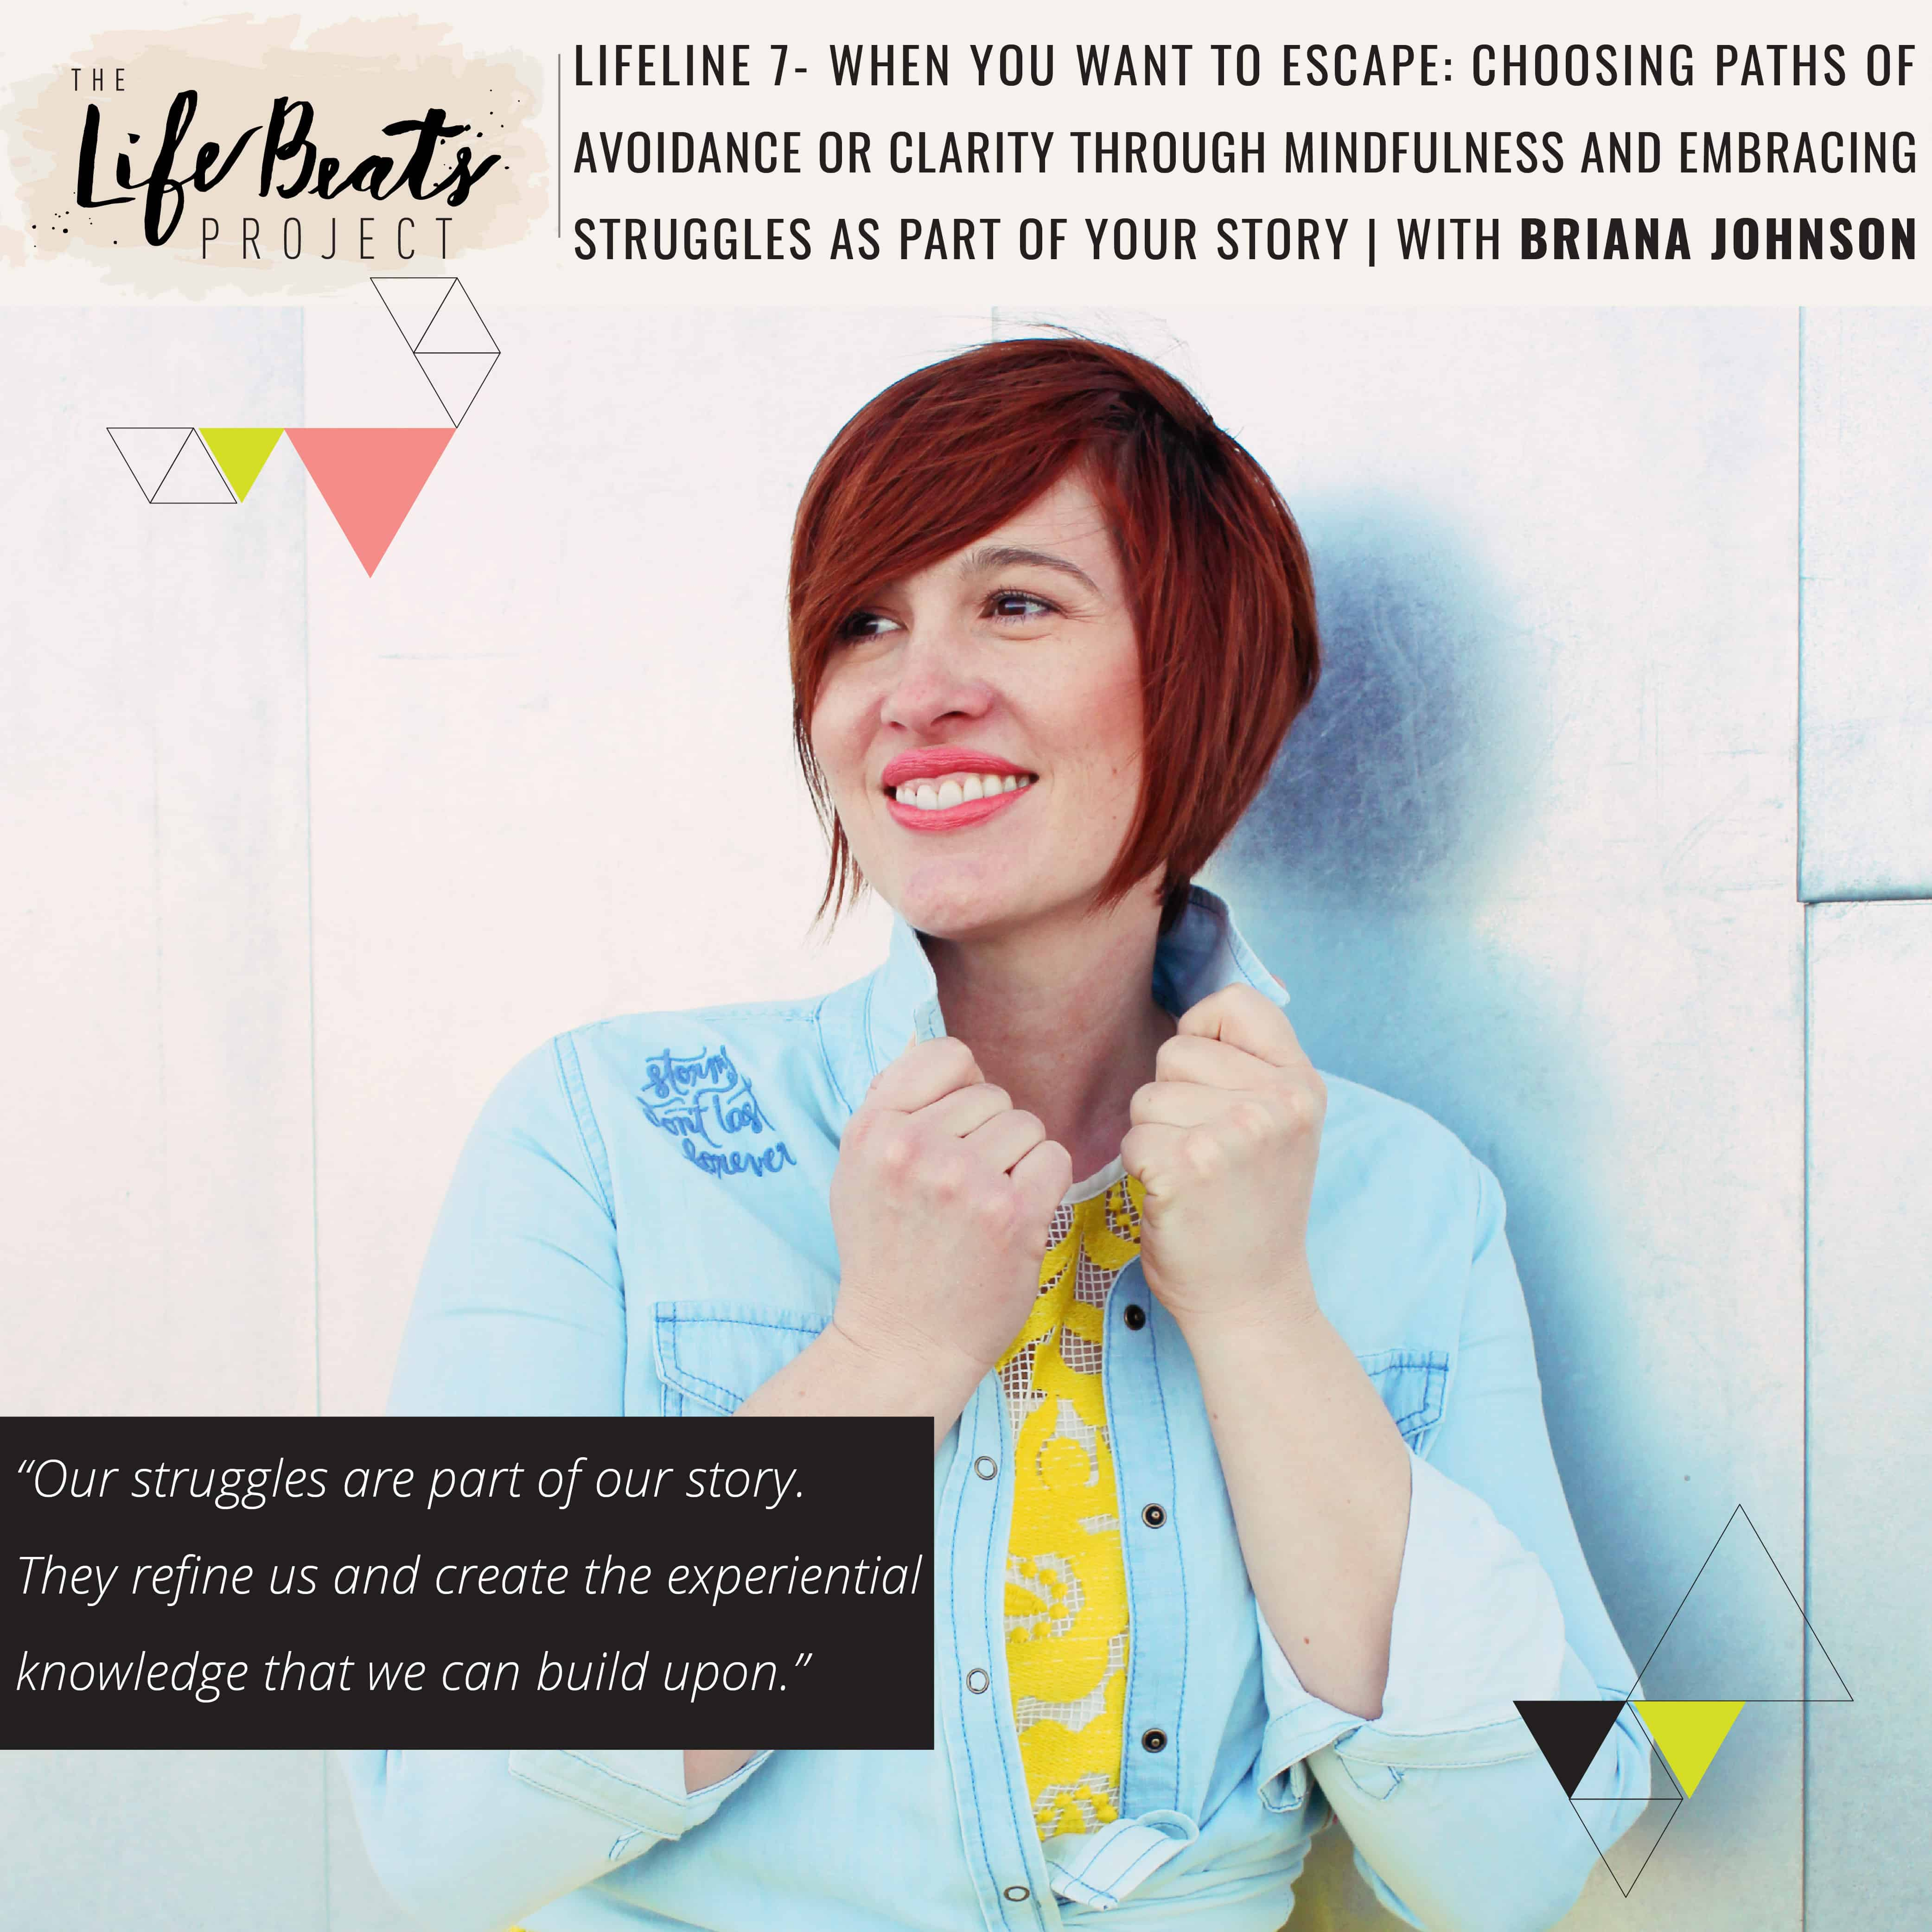 running away escape hard things mindfulness addiction our story struggles podcast The LifeBeats Project Briana Johnson